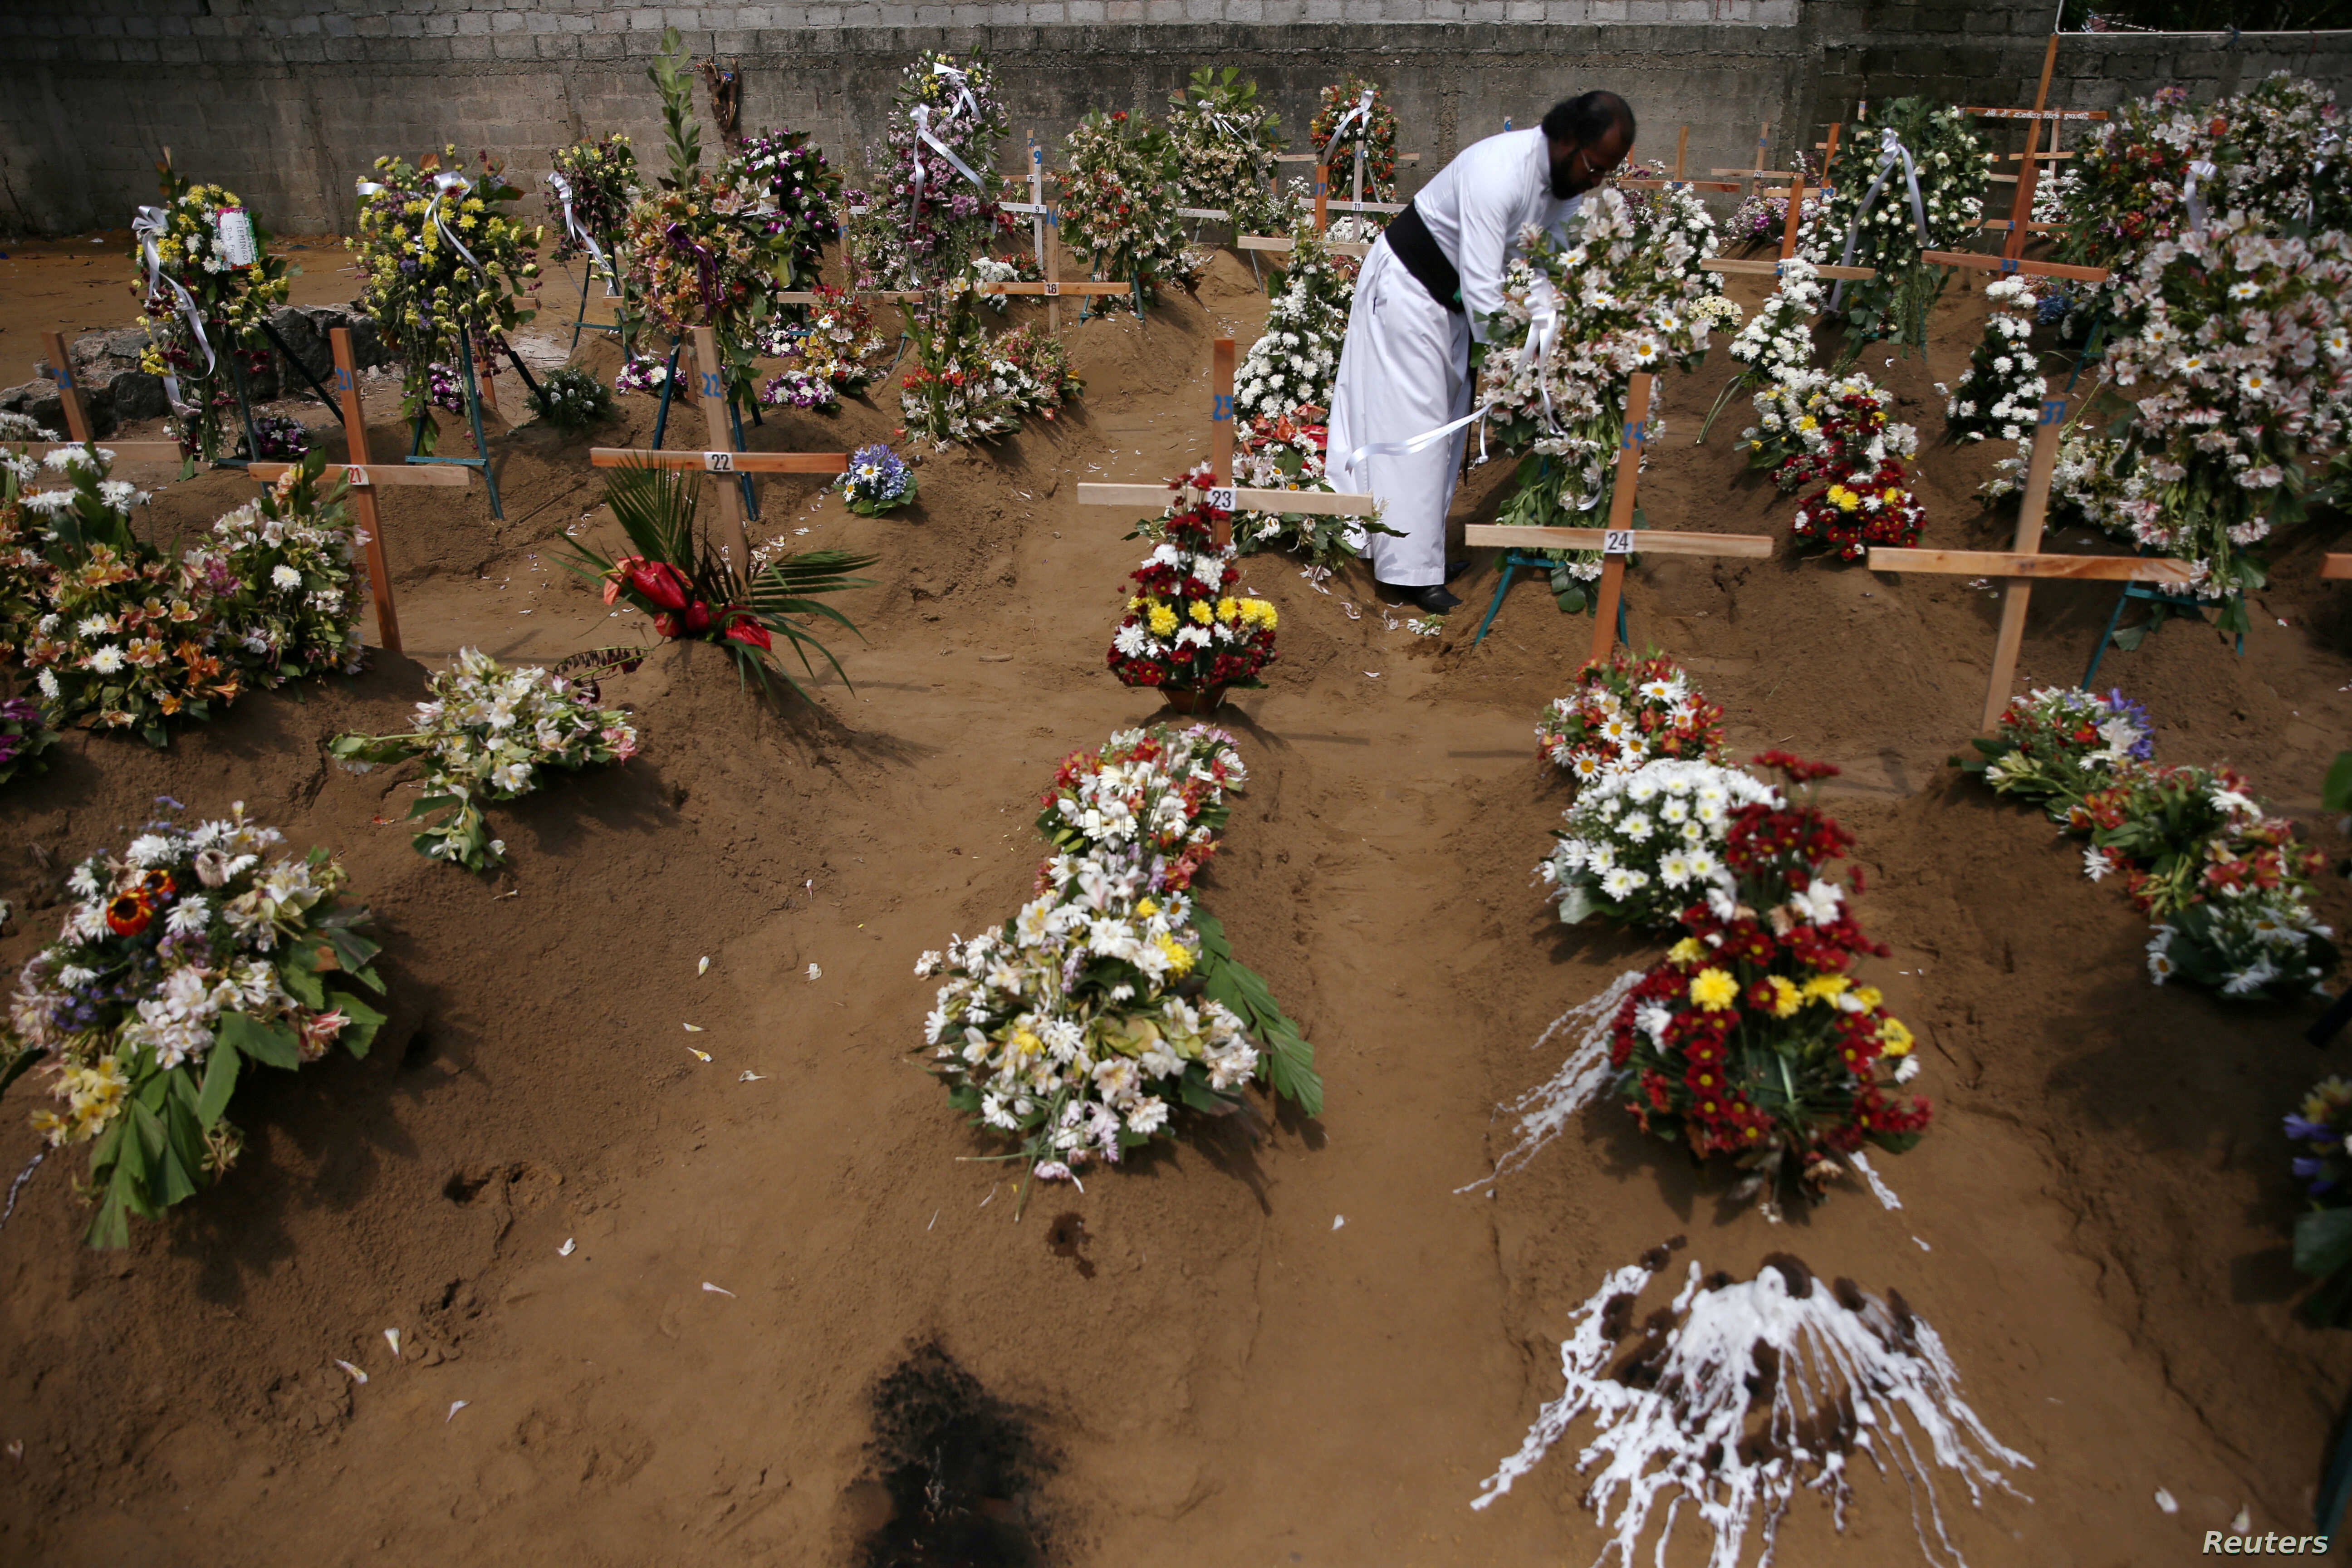 A priest arranges flowers at the site of a mass burial in Negombo, Sri Lanka, April 25, 2019.